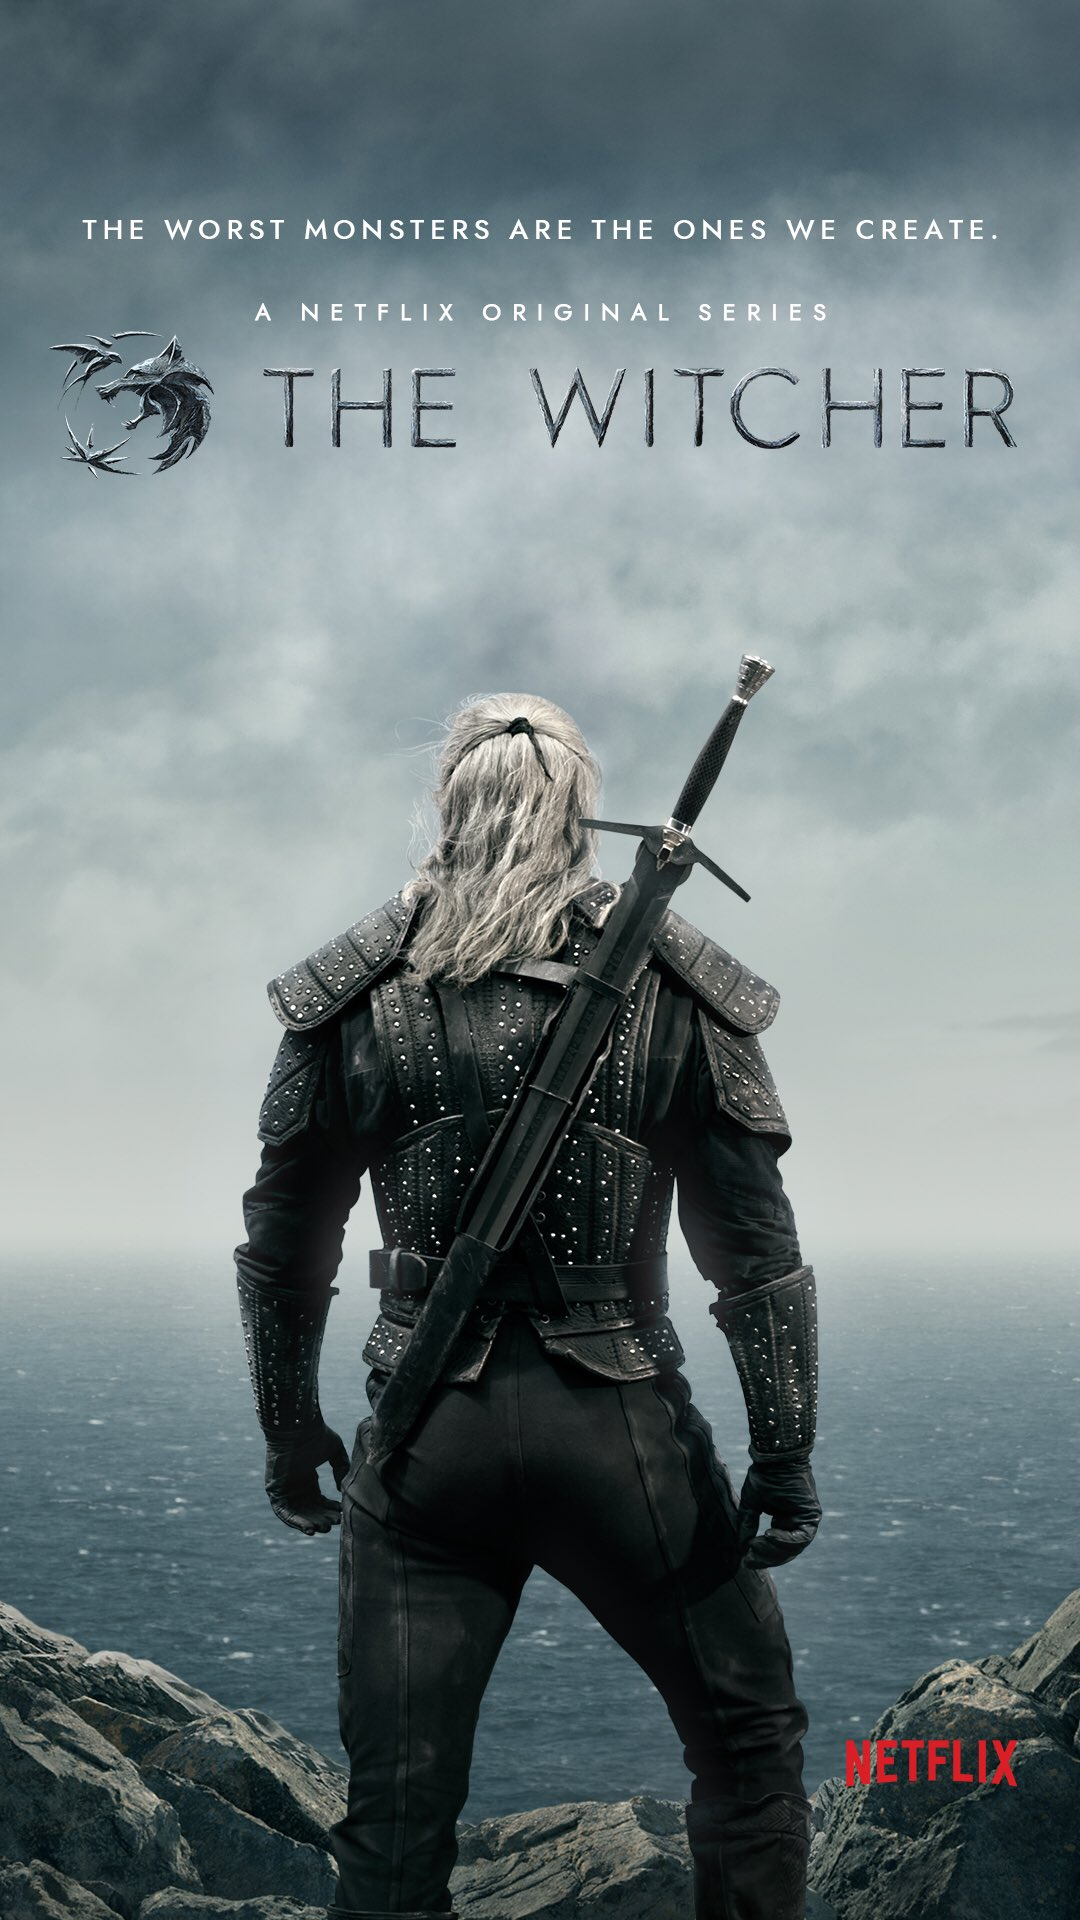 Netflix's The Witcher